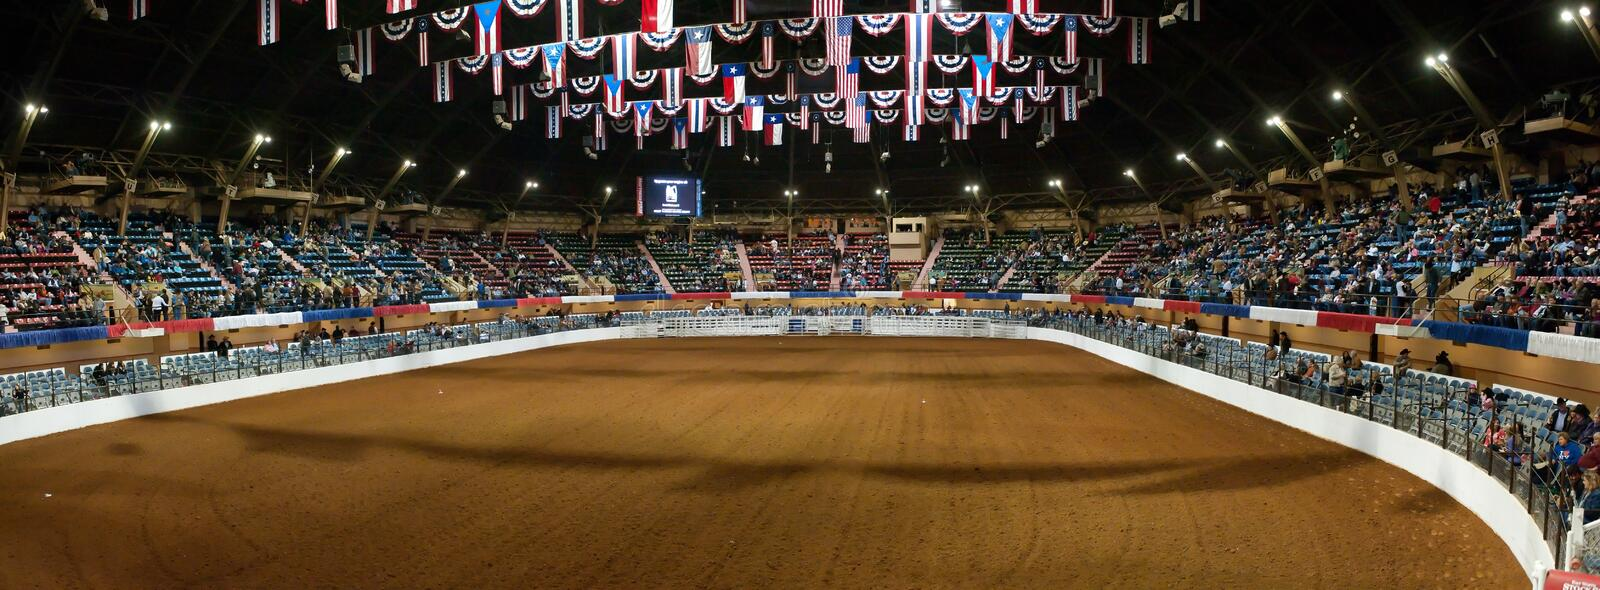 Rodeo Arena Panoramic royalty free stock photography